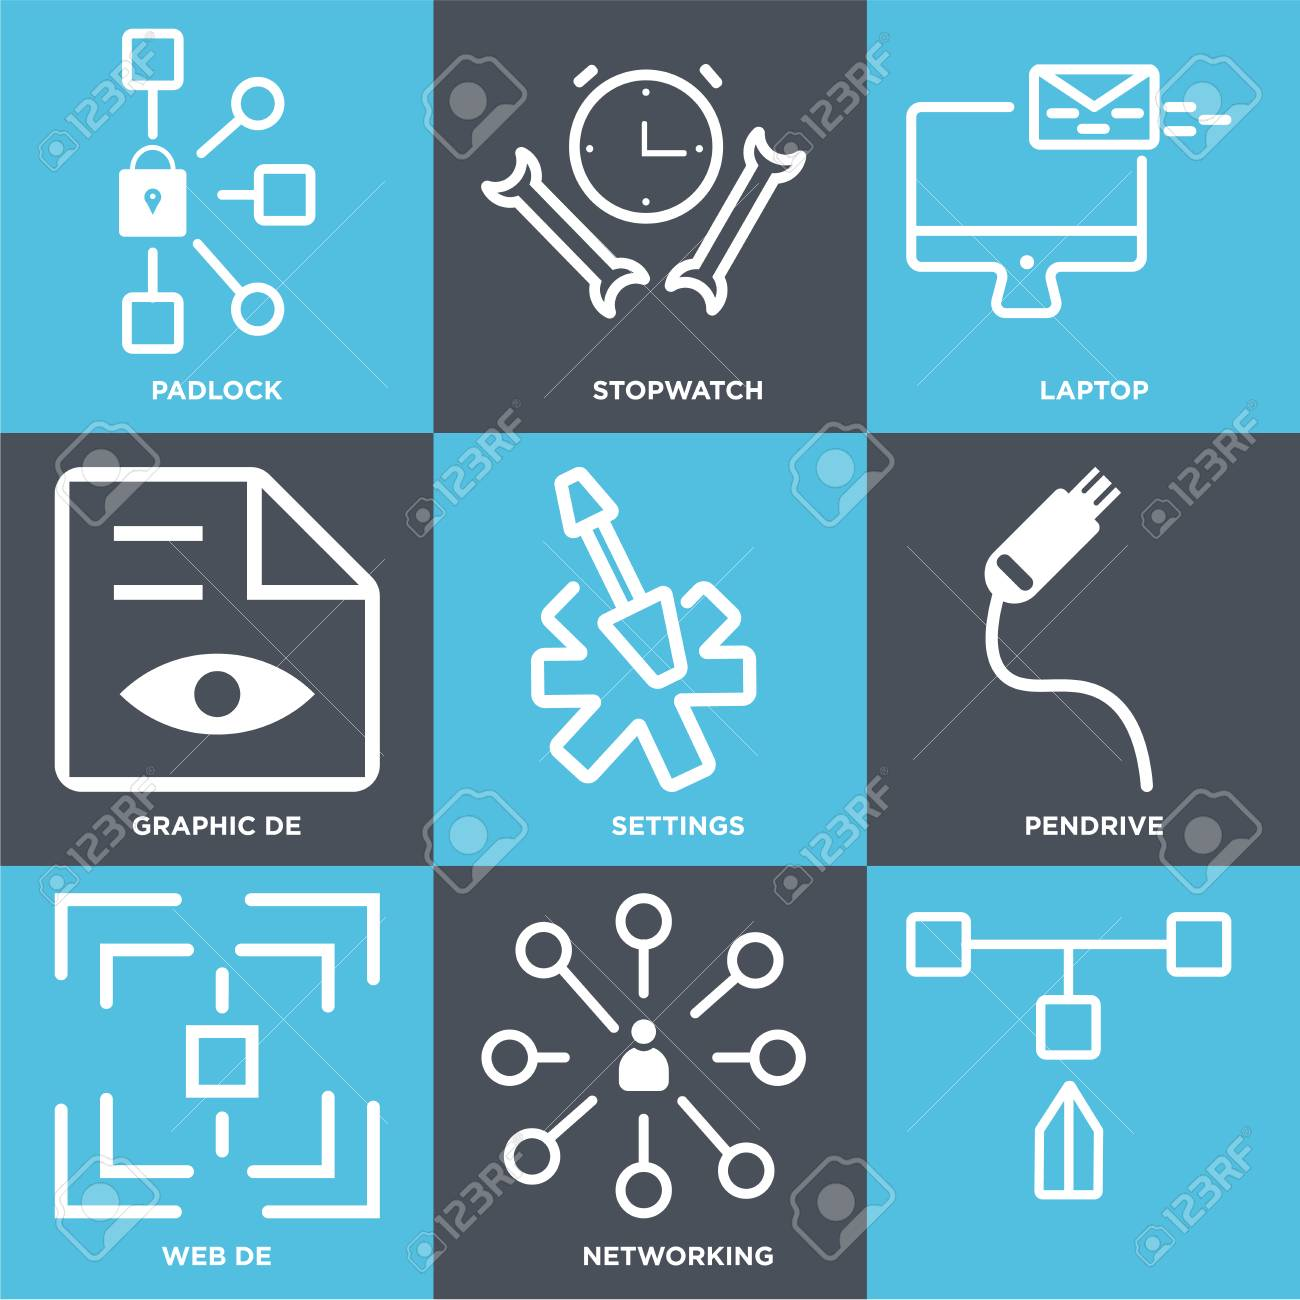 Set Of 9 simple editable icons such as Networking, Web de, Pendrive,